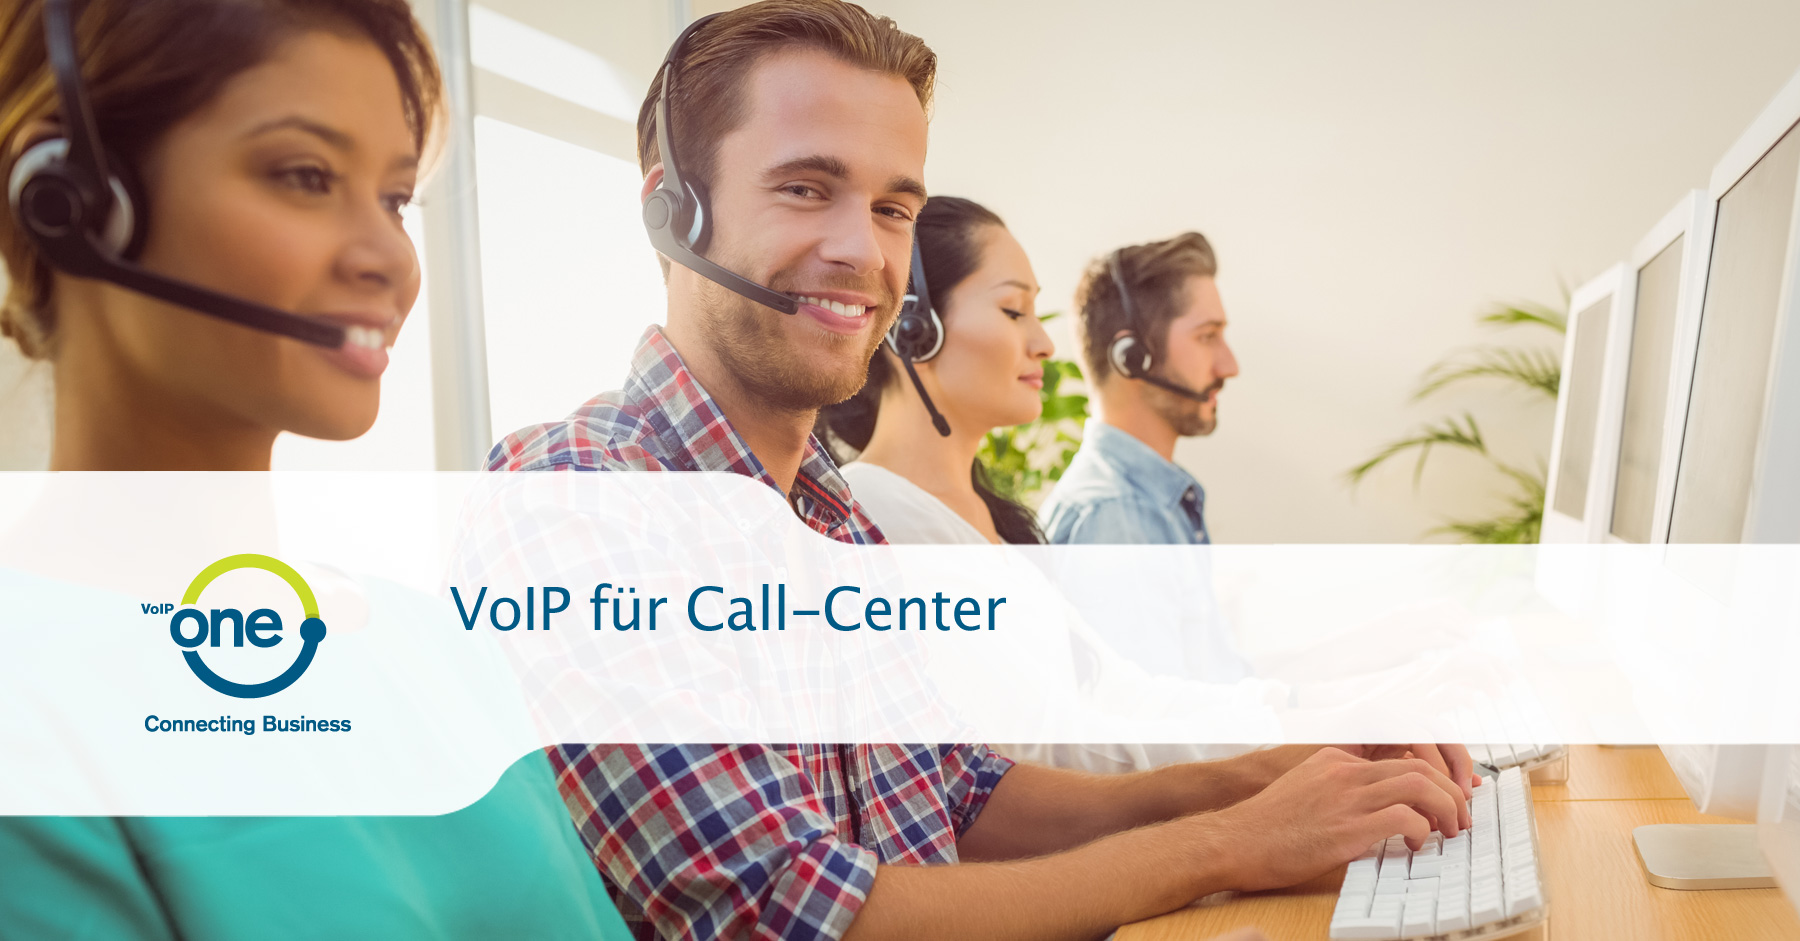 VoIP für Call-Center